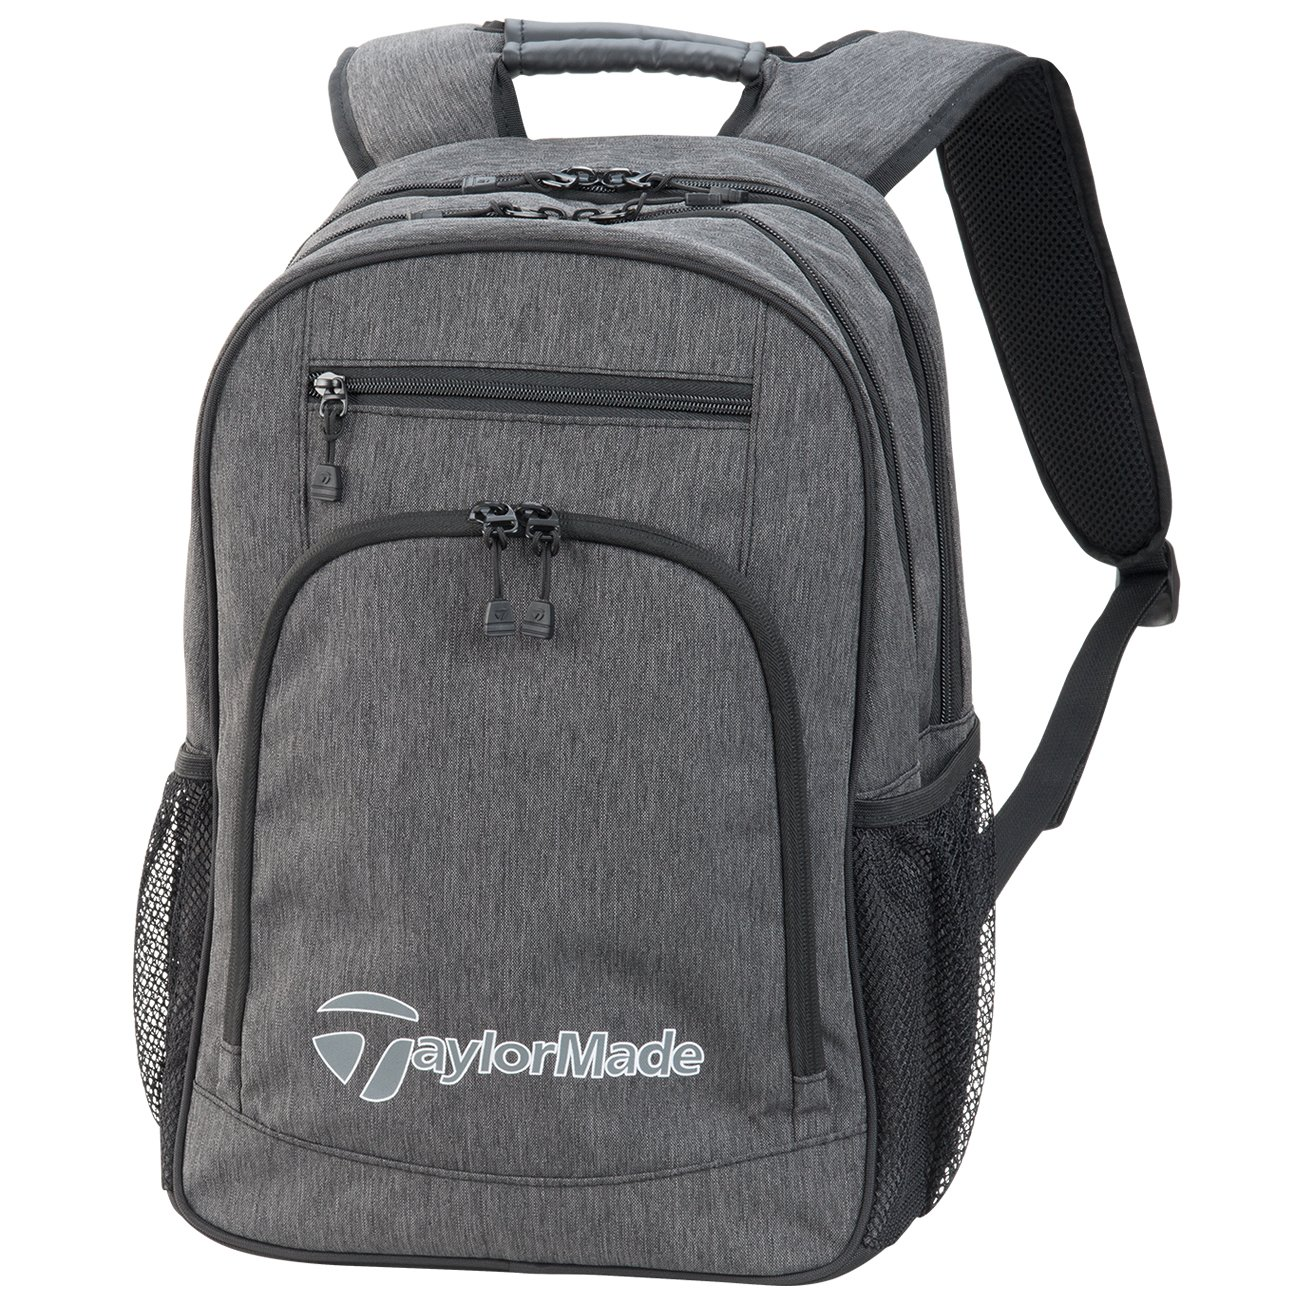 Amazon.com: TaylorMade Golf 2018 Mens Classic Backpack Sports Bag / Gym Bag / Laptop Bag Grey/Black: Sports & Outdoors